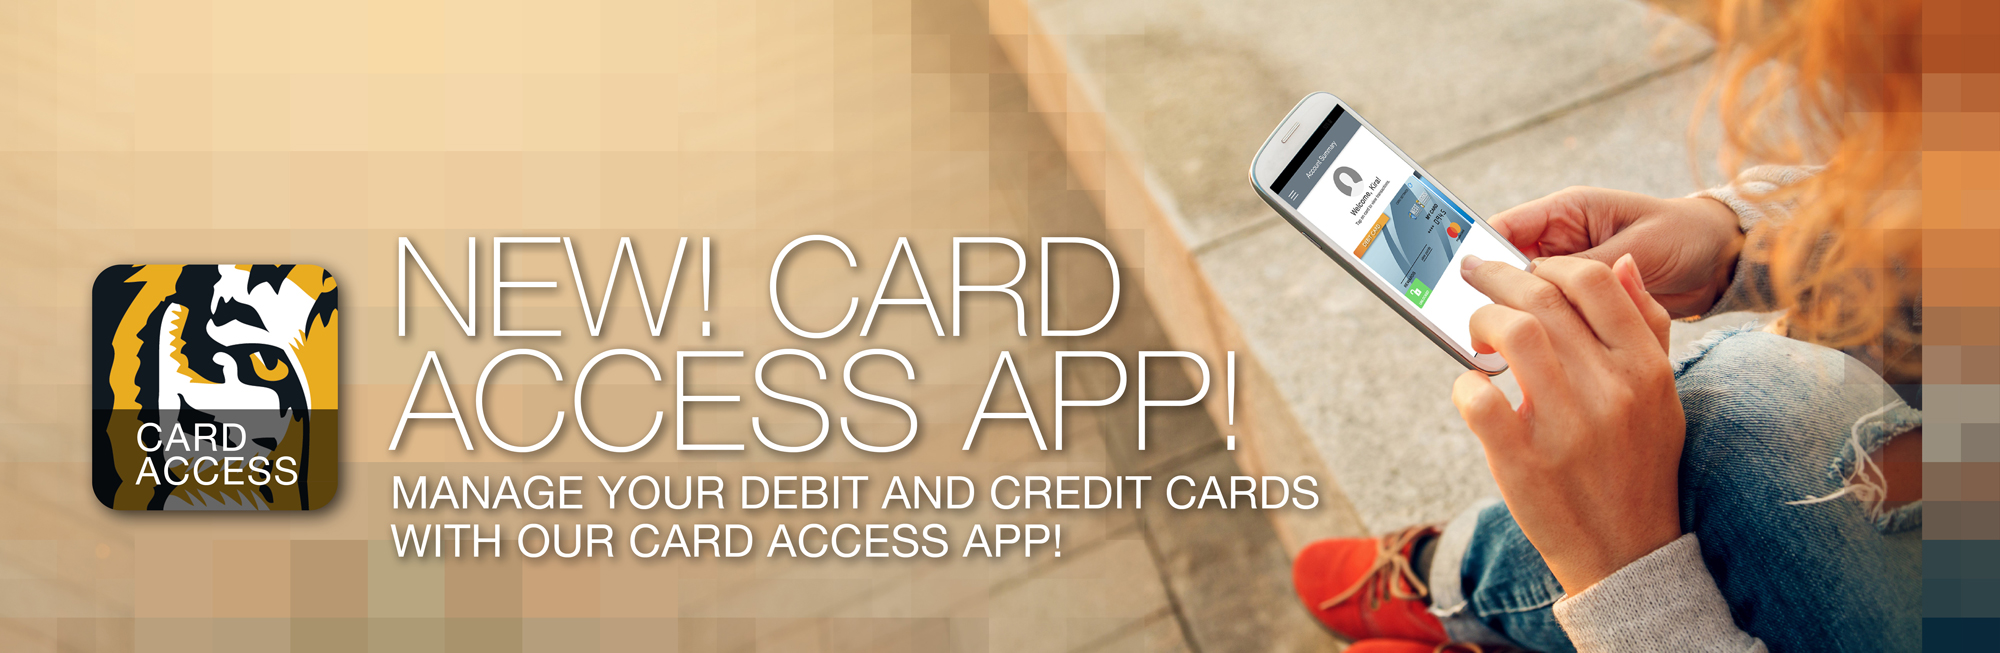 Introducing our Card Access App. Now you can manage your Tigers Community debit and credit cards from your phone.